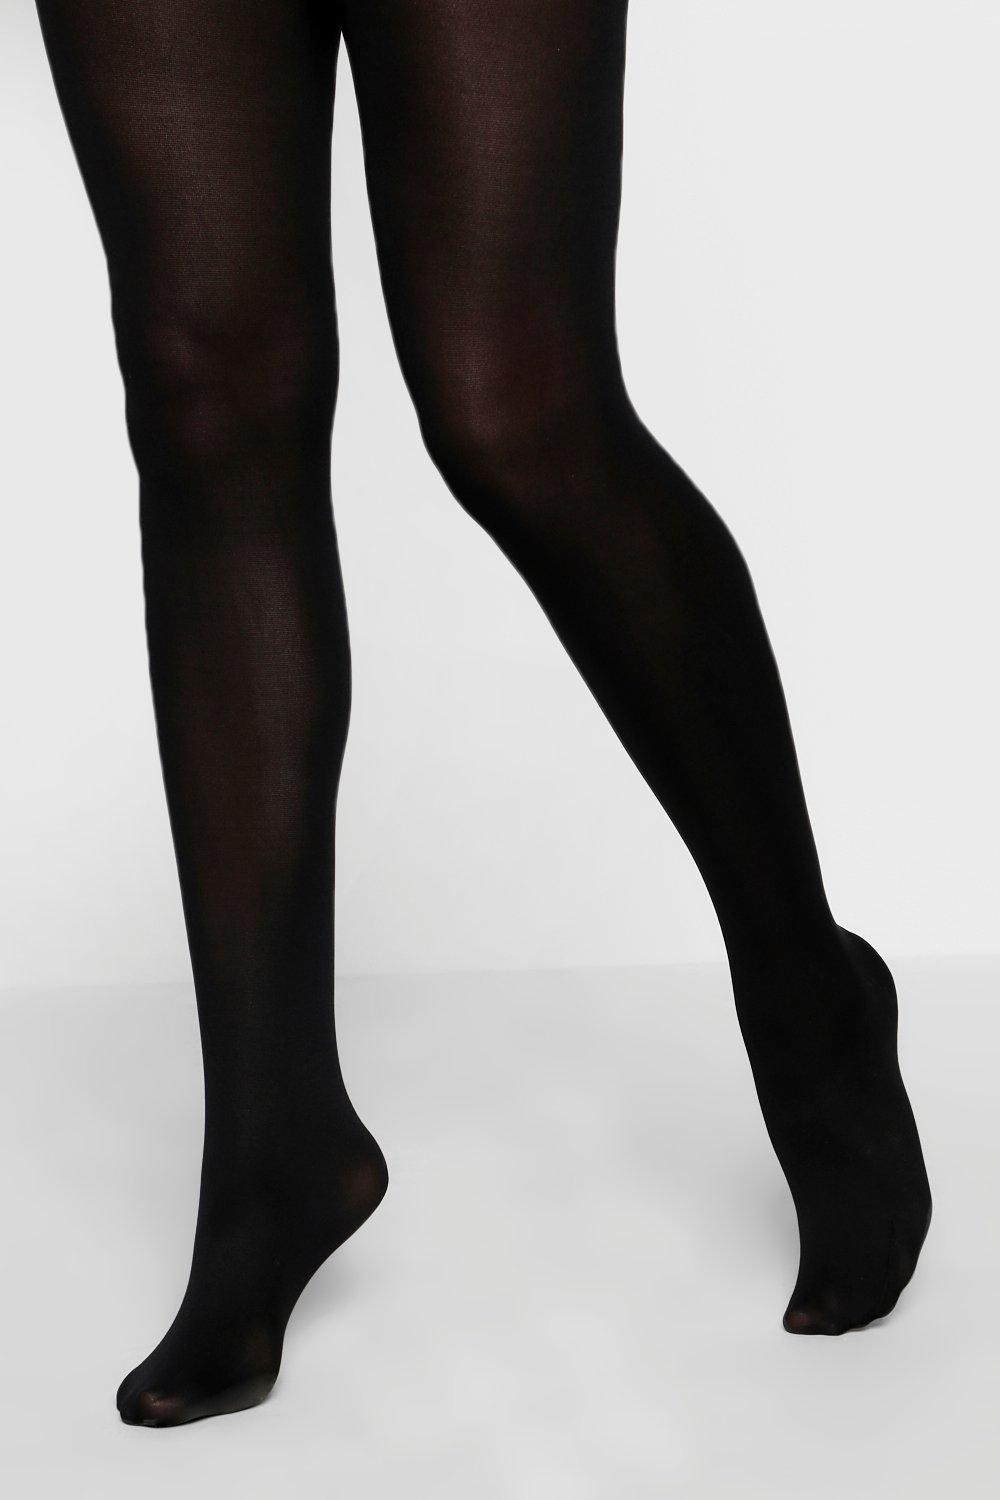 169b81a3ed177 Womens Black 40 Denier 2 Pack Microfibre Tights. Hover to zoom